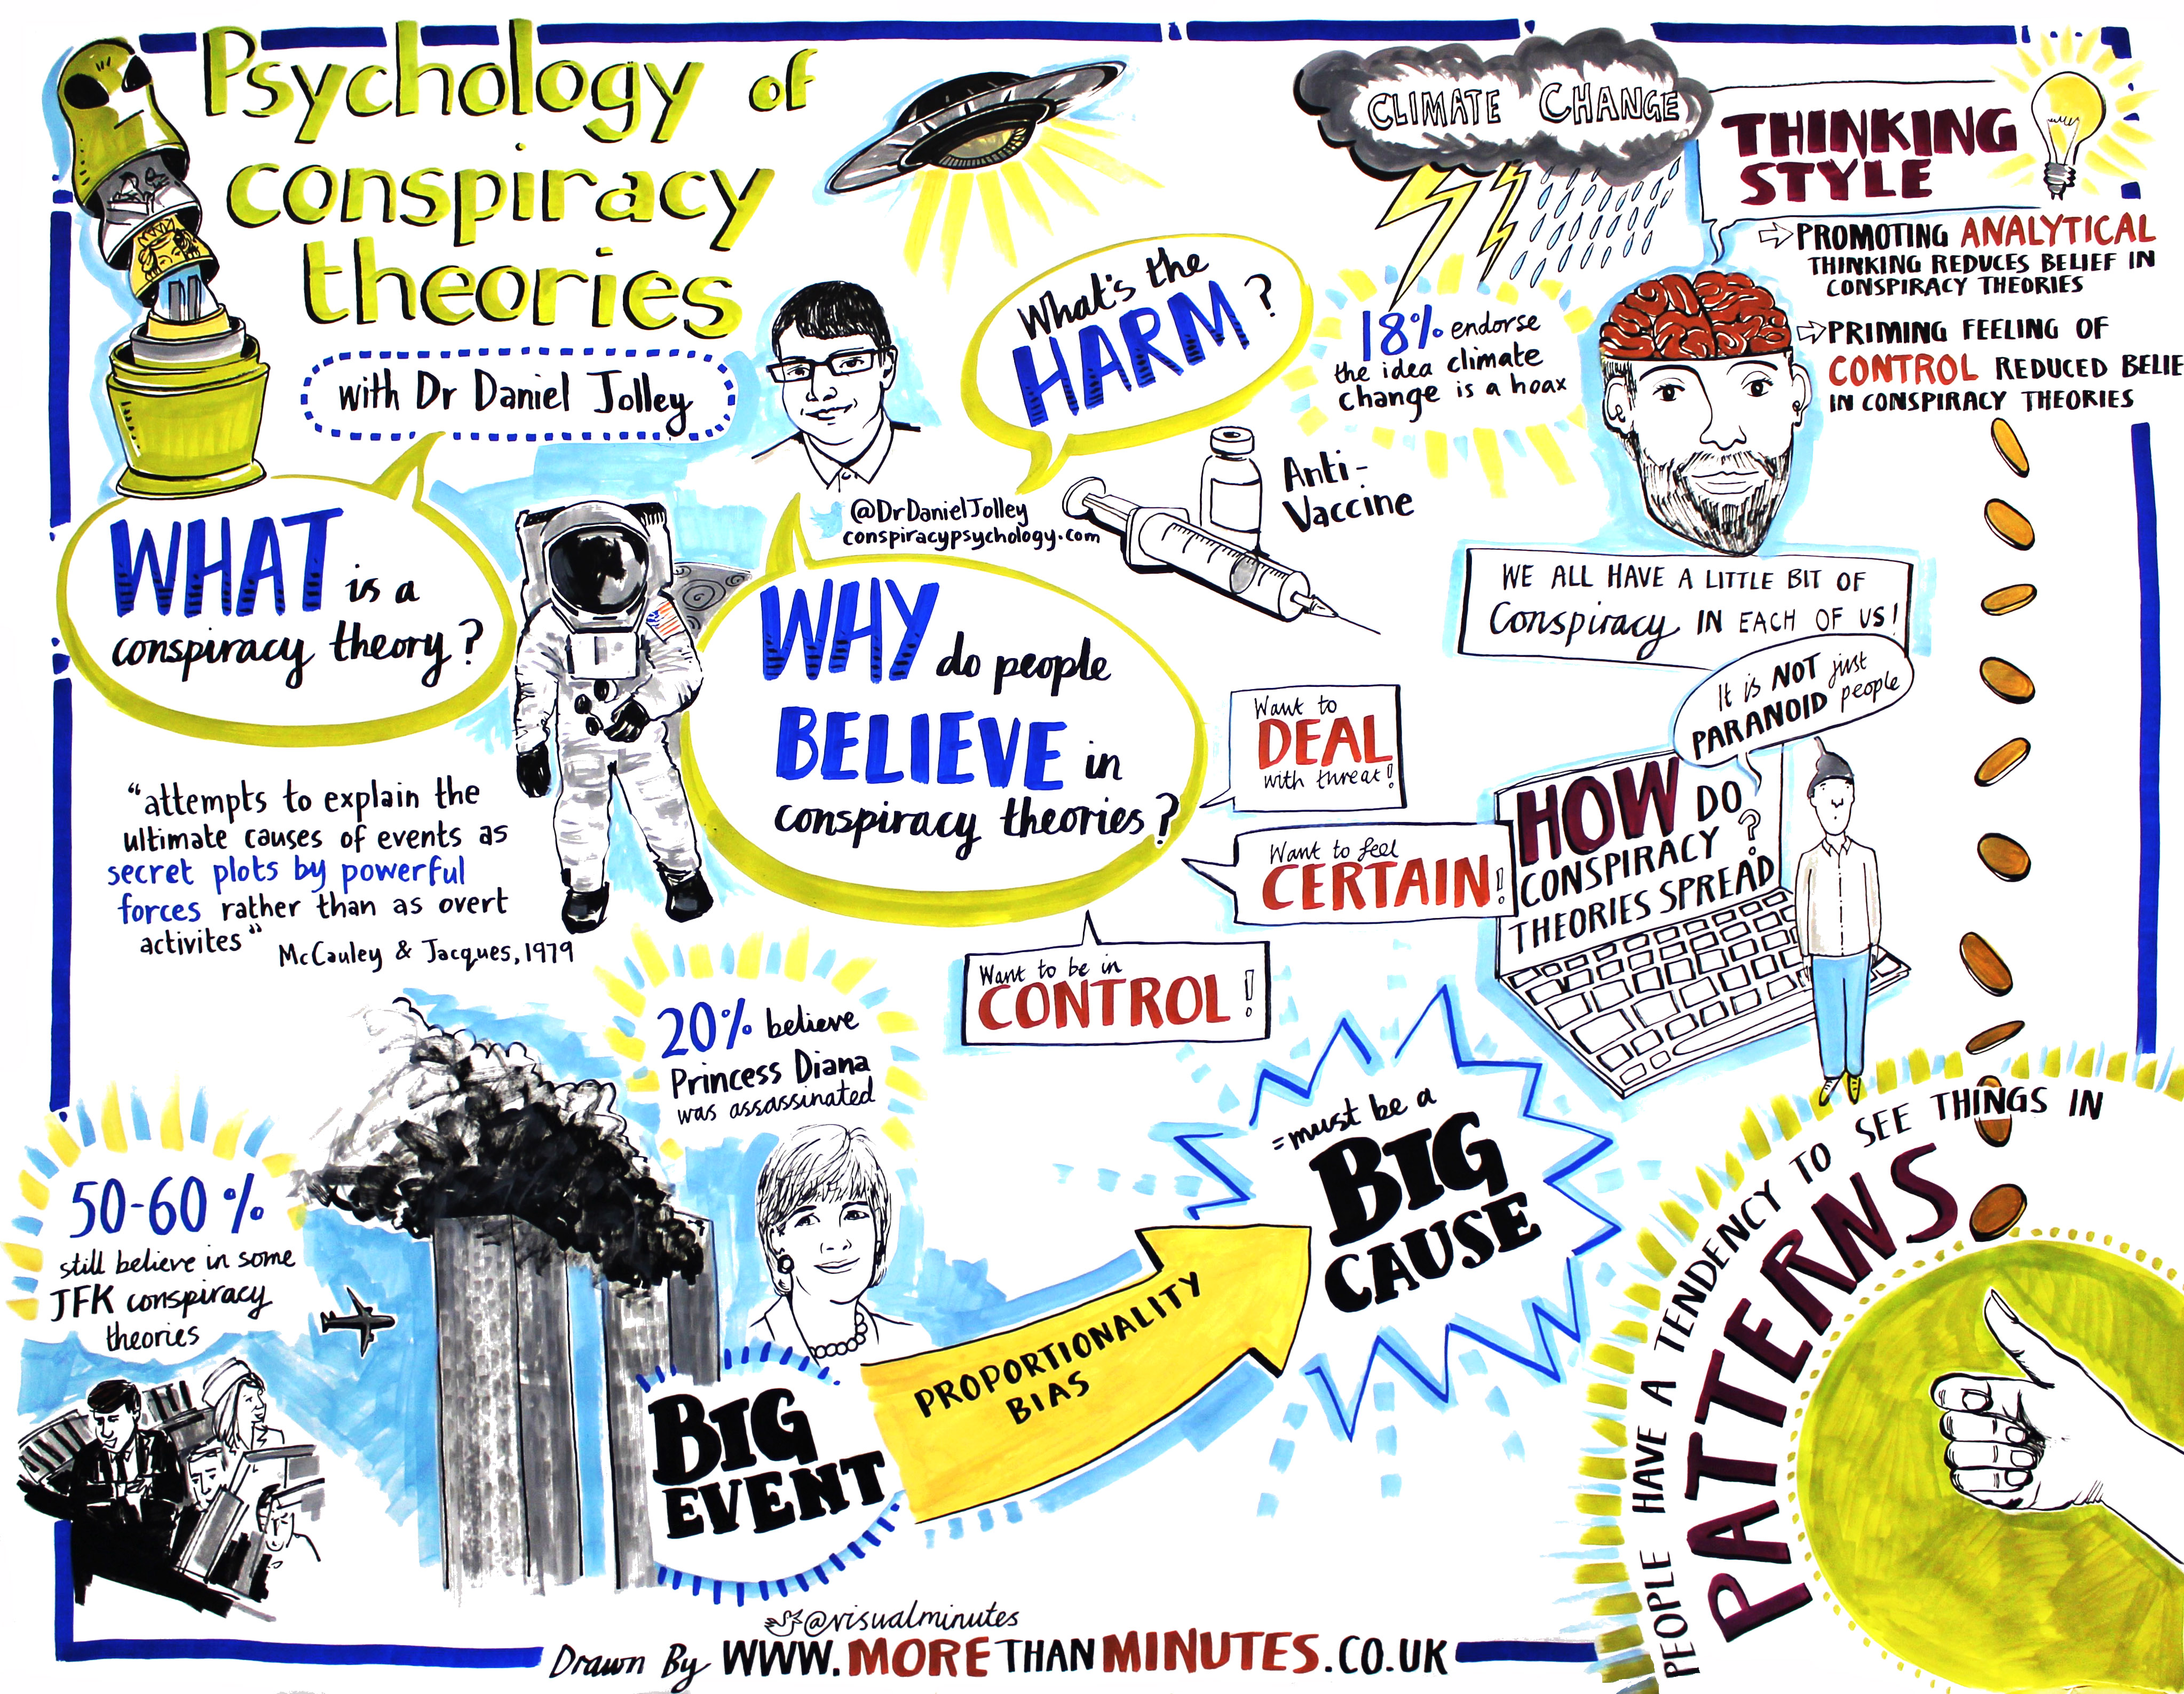 Psych of Conspiracy Image High